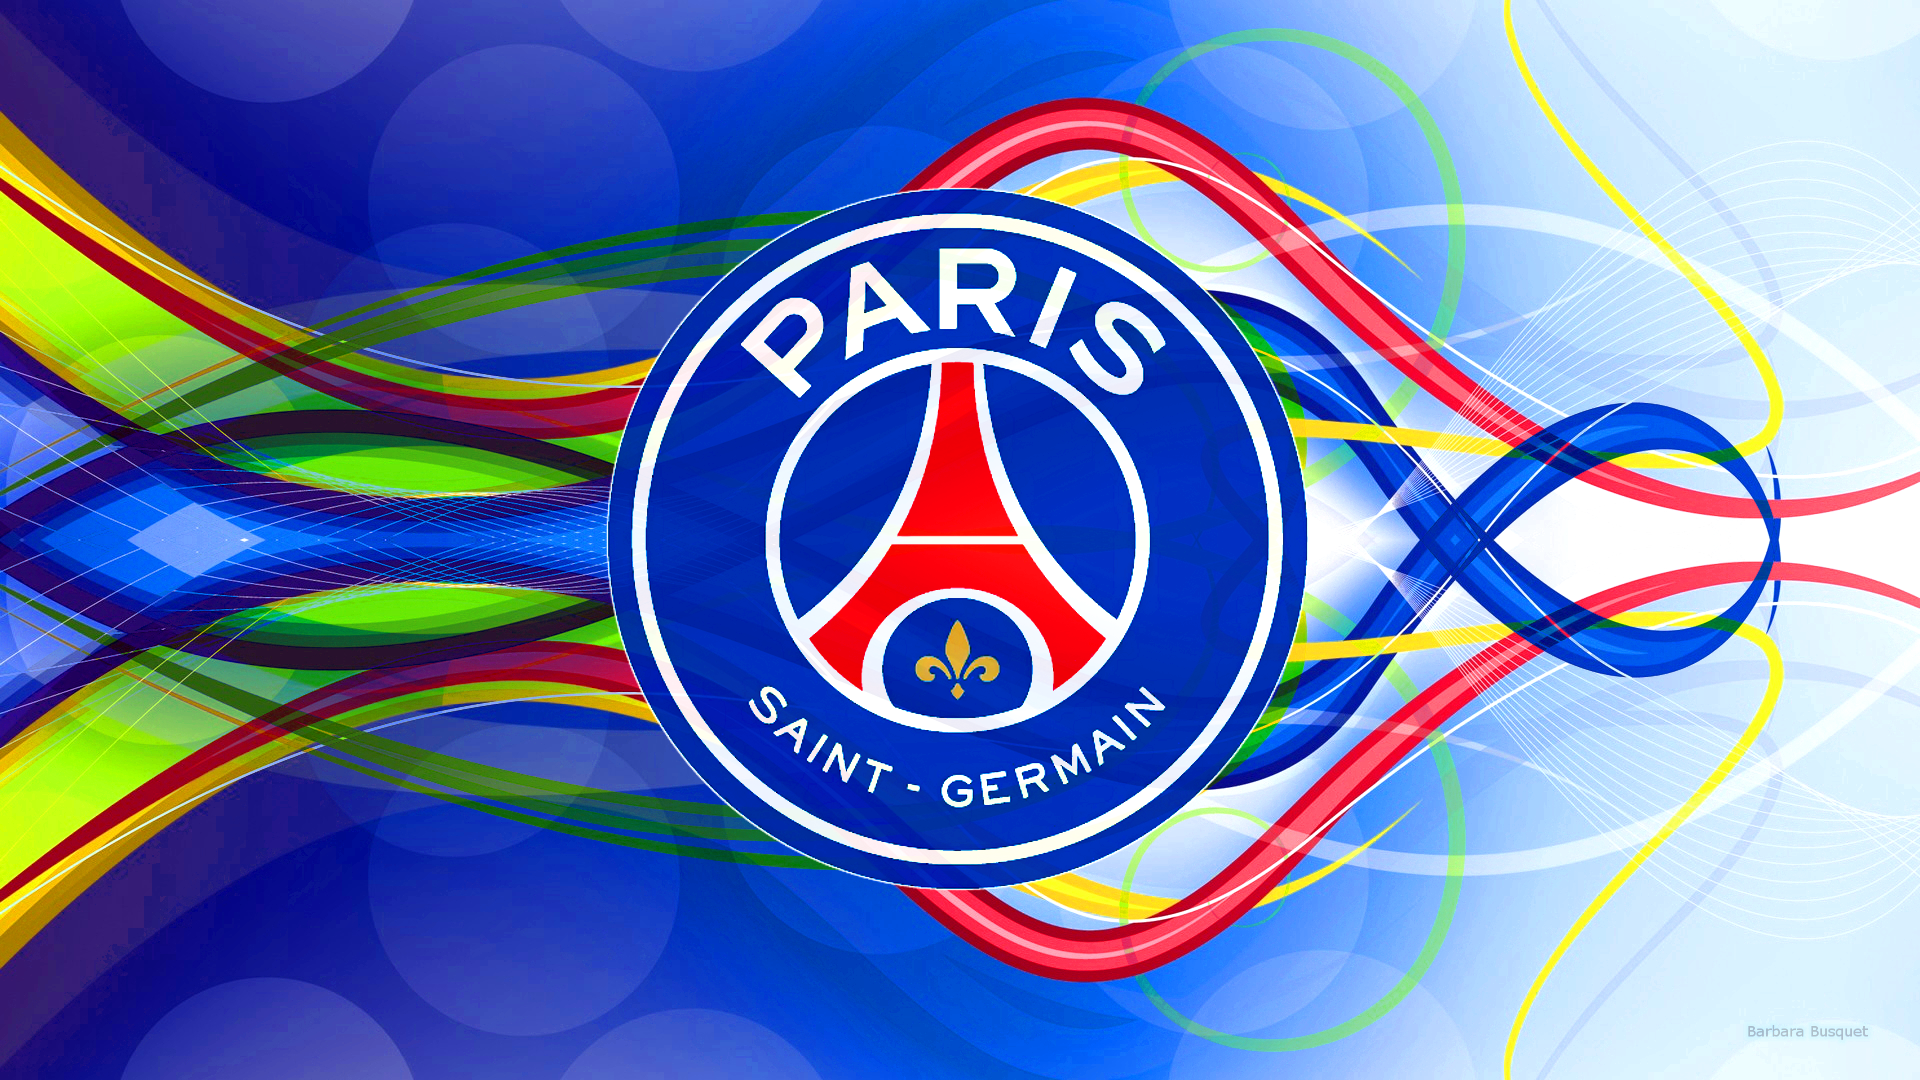 1920x1080 - Paris Saint-Germain F.C. Wallpapers 15